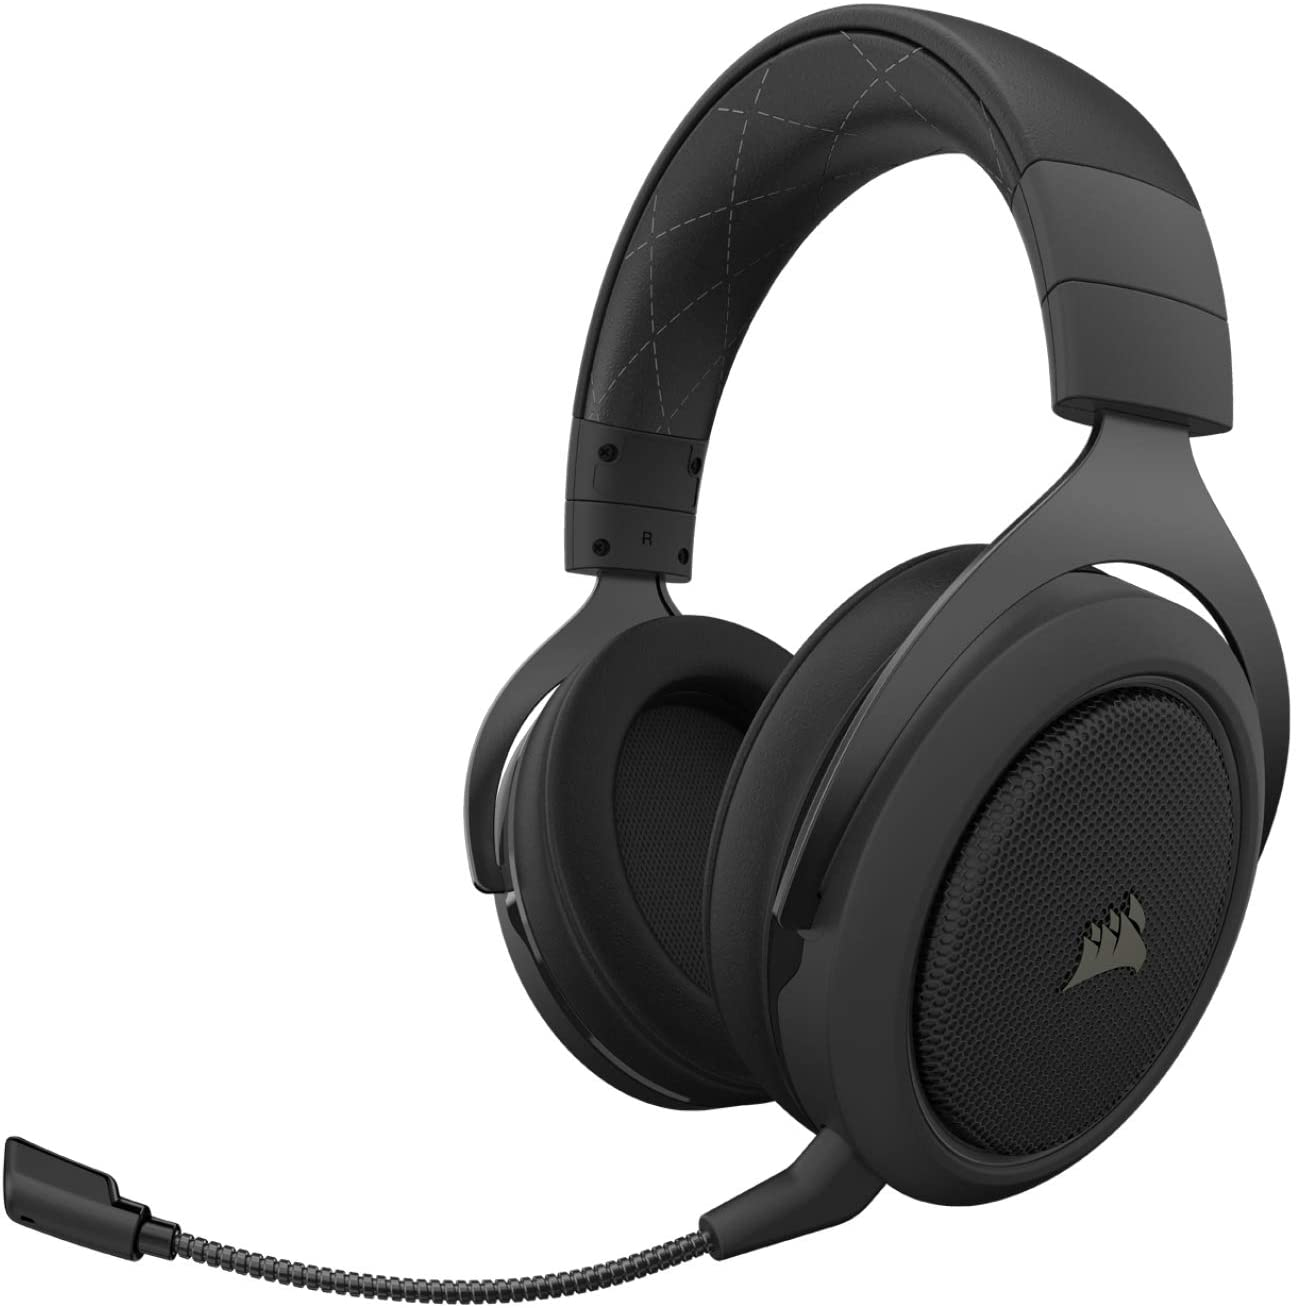 Corsair HS70 Pro Wireless Gaming Headset - 7.1 Surround Sound Headphones for PC - Discord